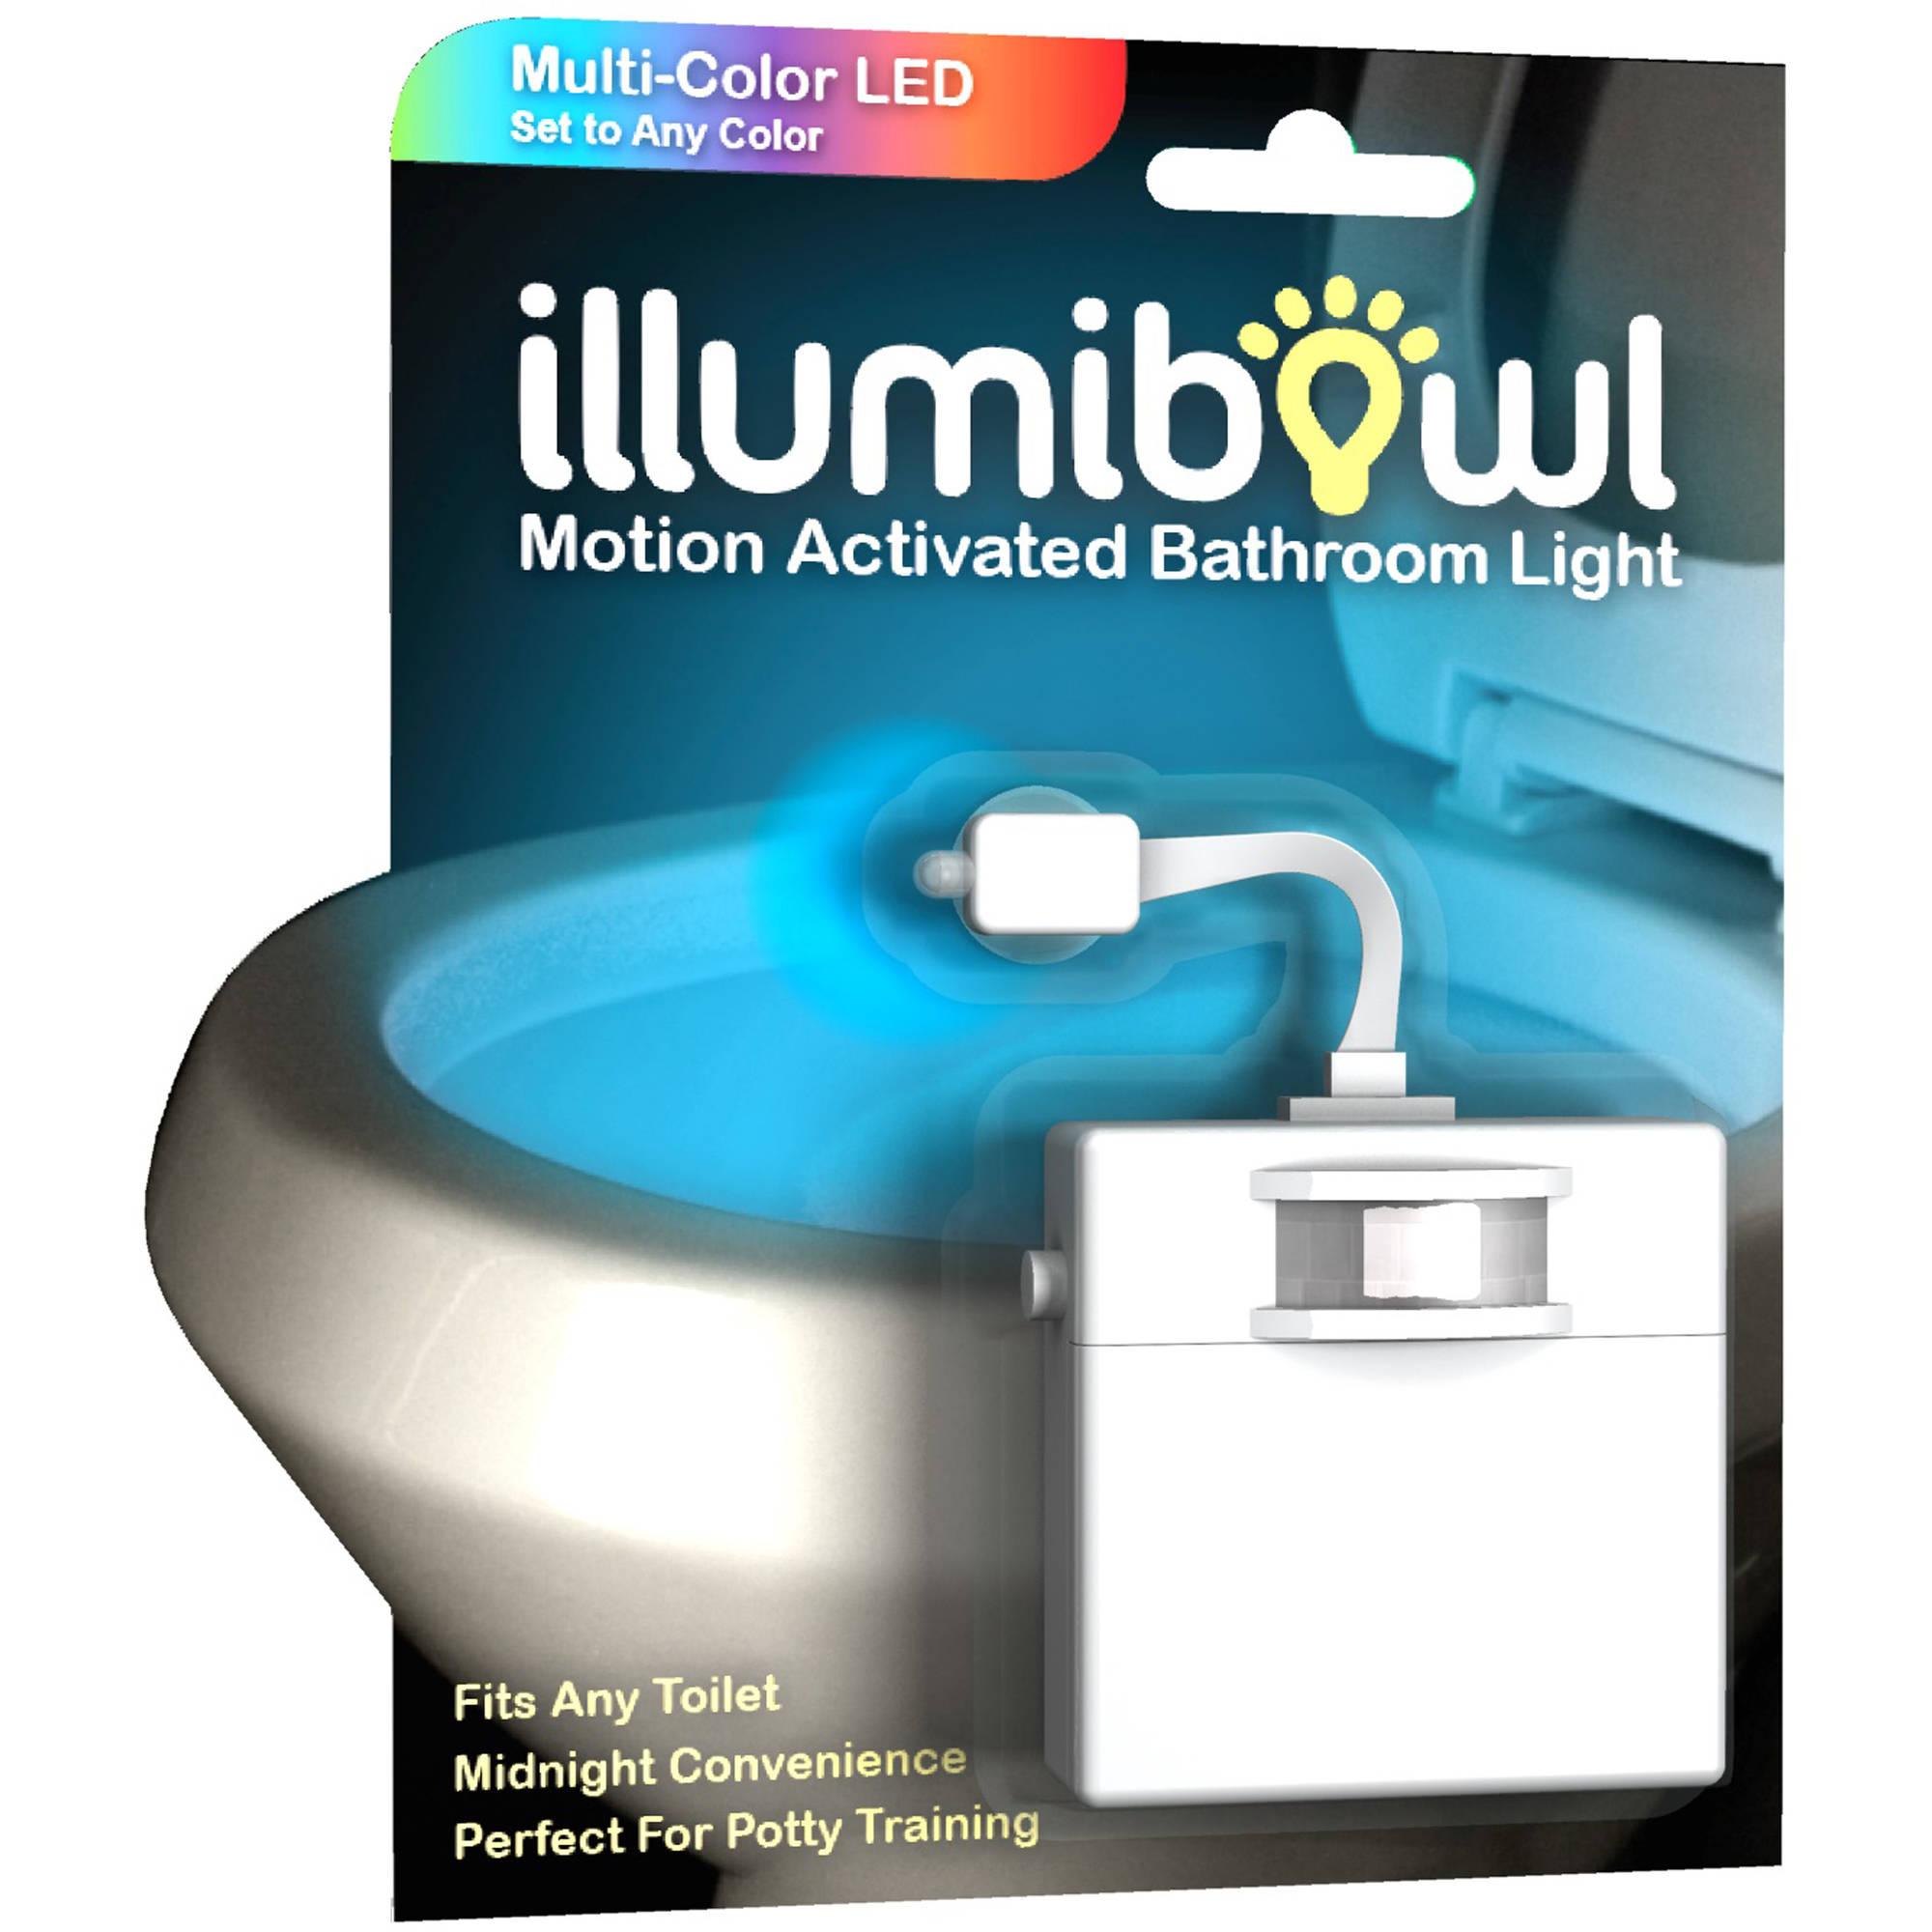 Bathroom Lighting Fixtures Walmart illumibowl motion-activated bathroom toilet night light - walmart